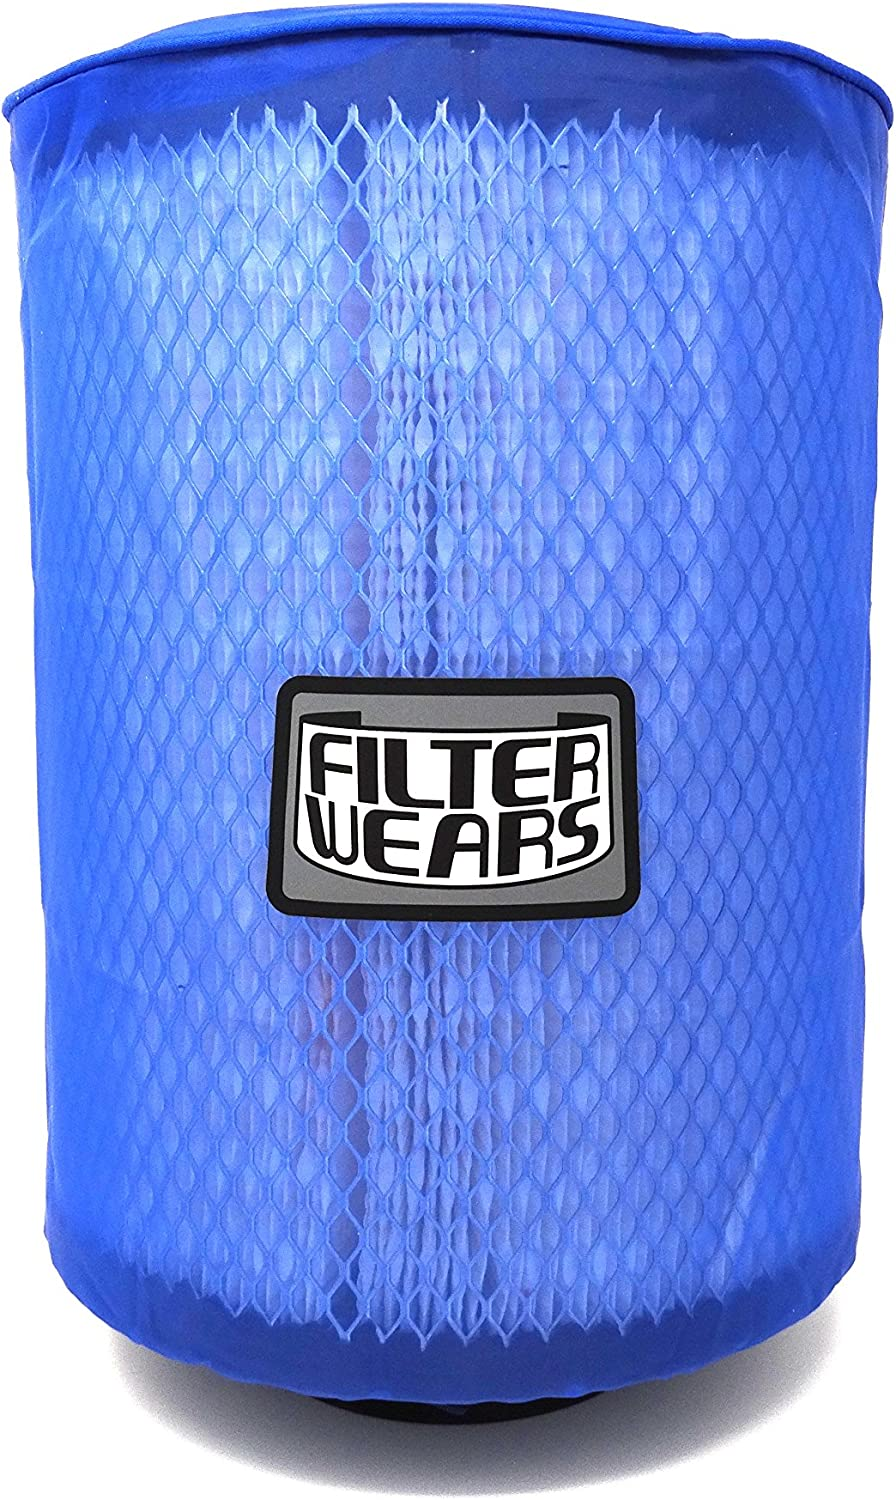 Check this 'FILTER WEAR' Air Filter Protector